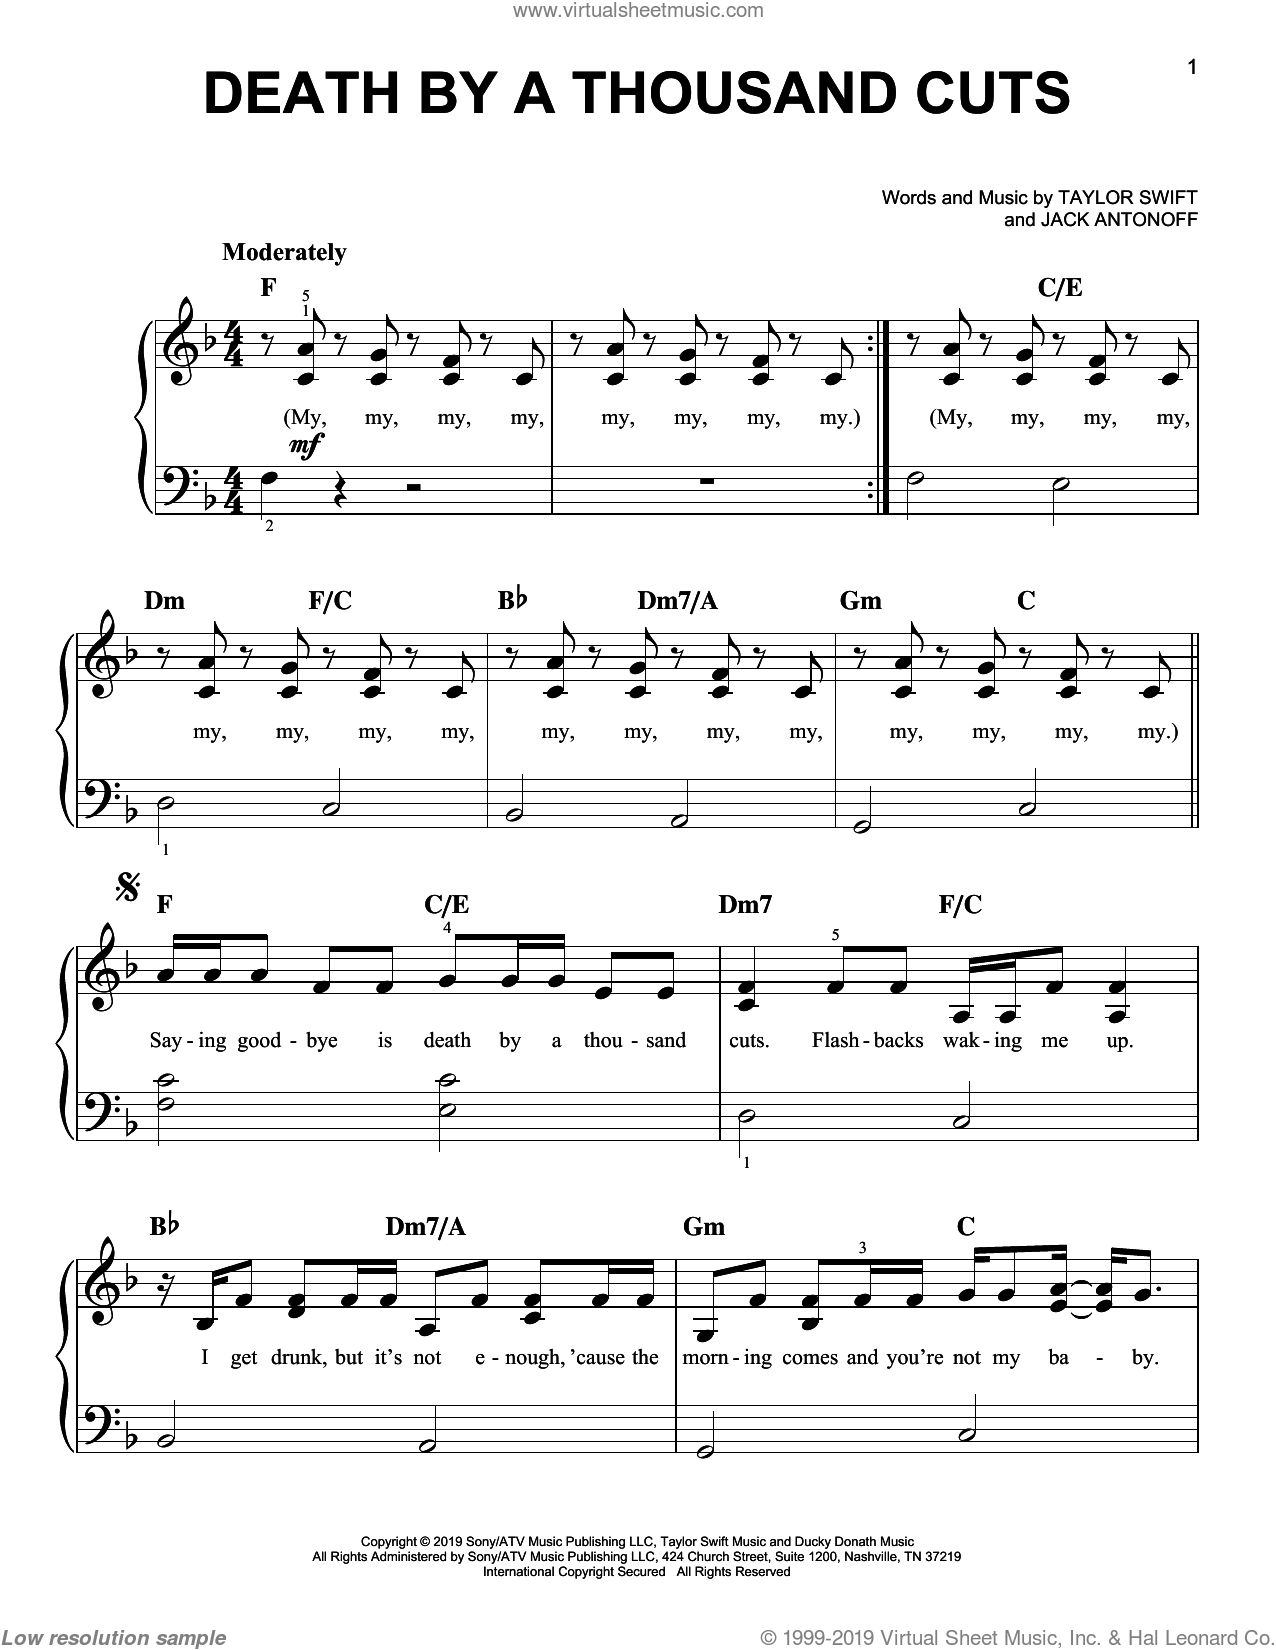 Death By A Thousand Cuts sheet music for piano solo by Taylor Swift and Jack Antonoff, easy skill level